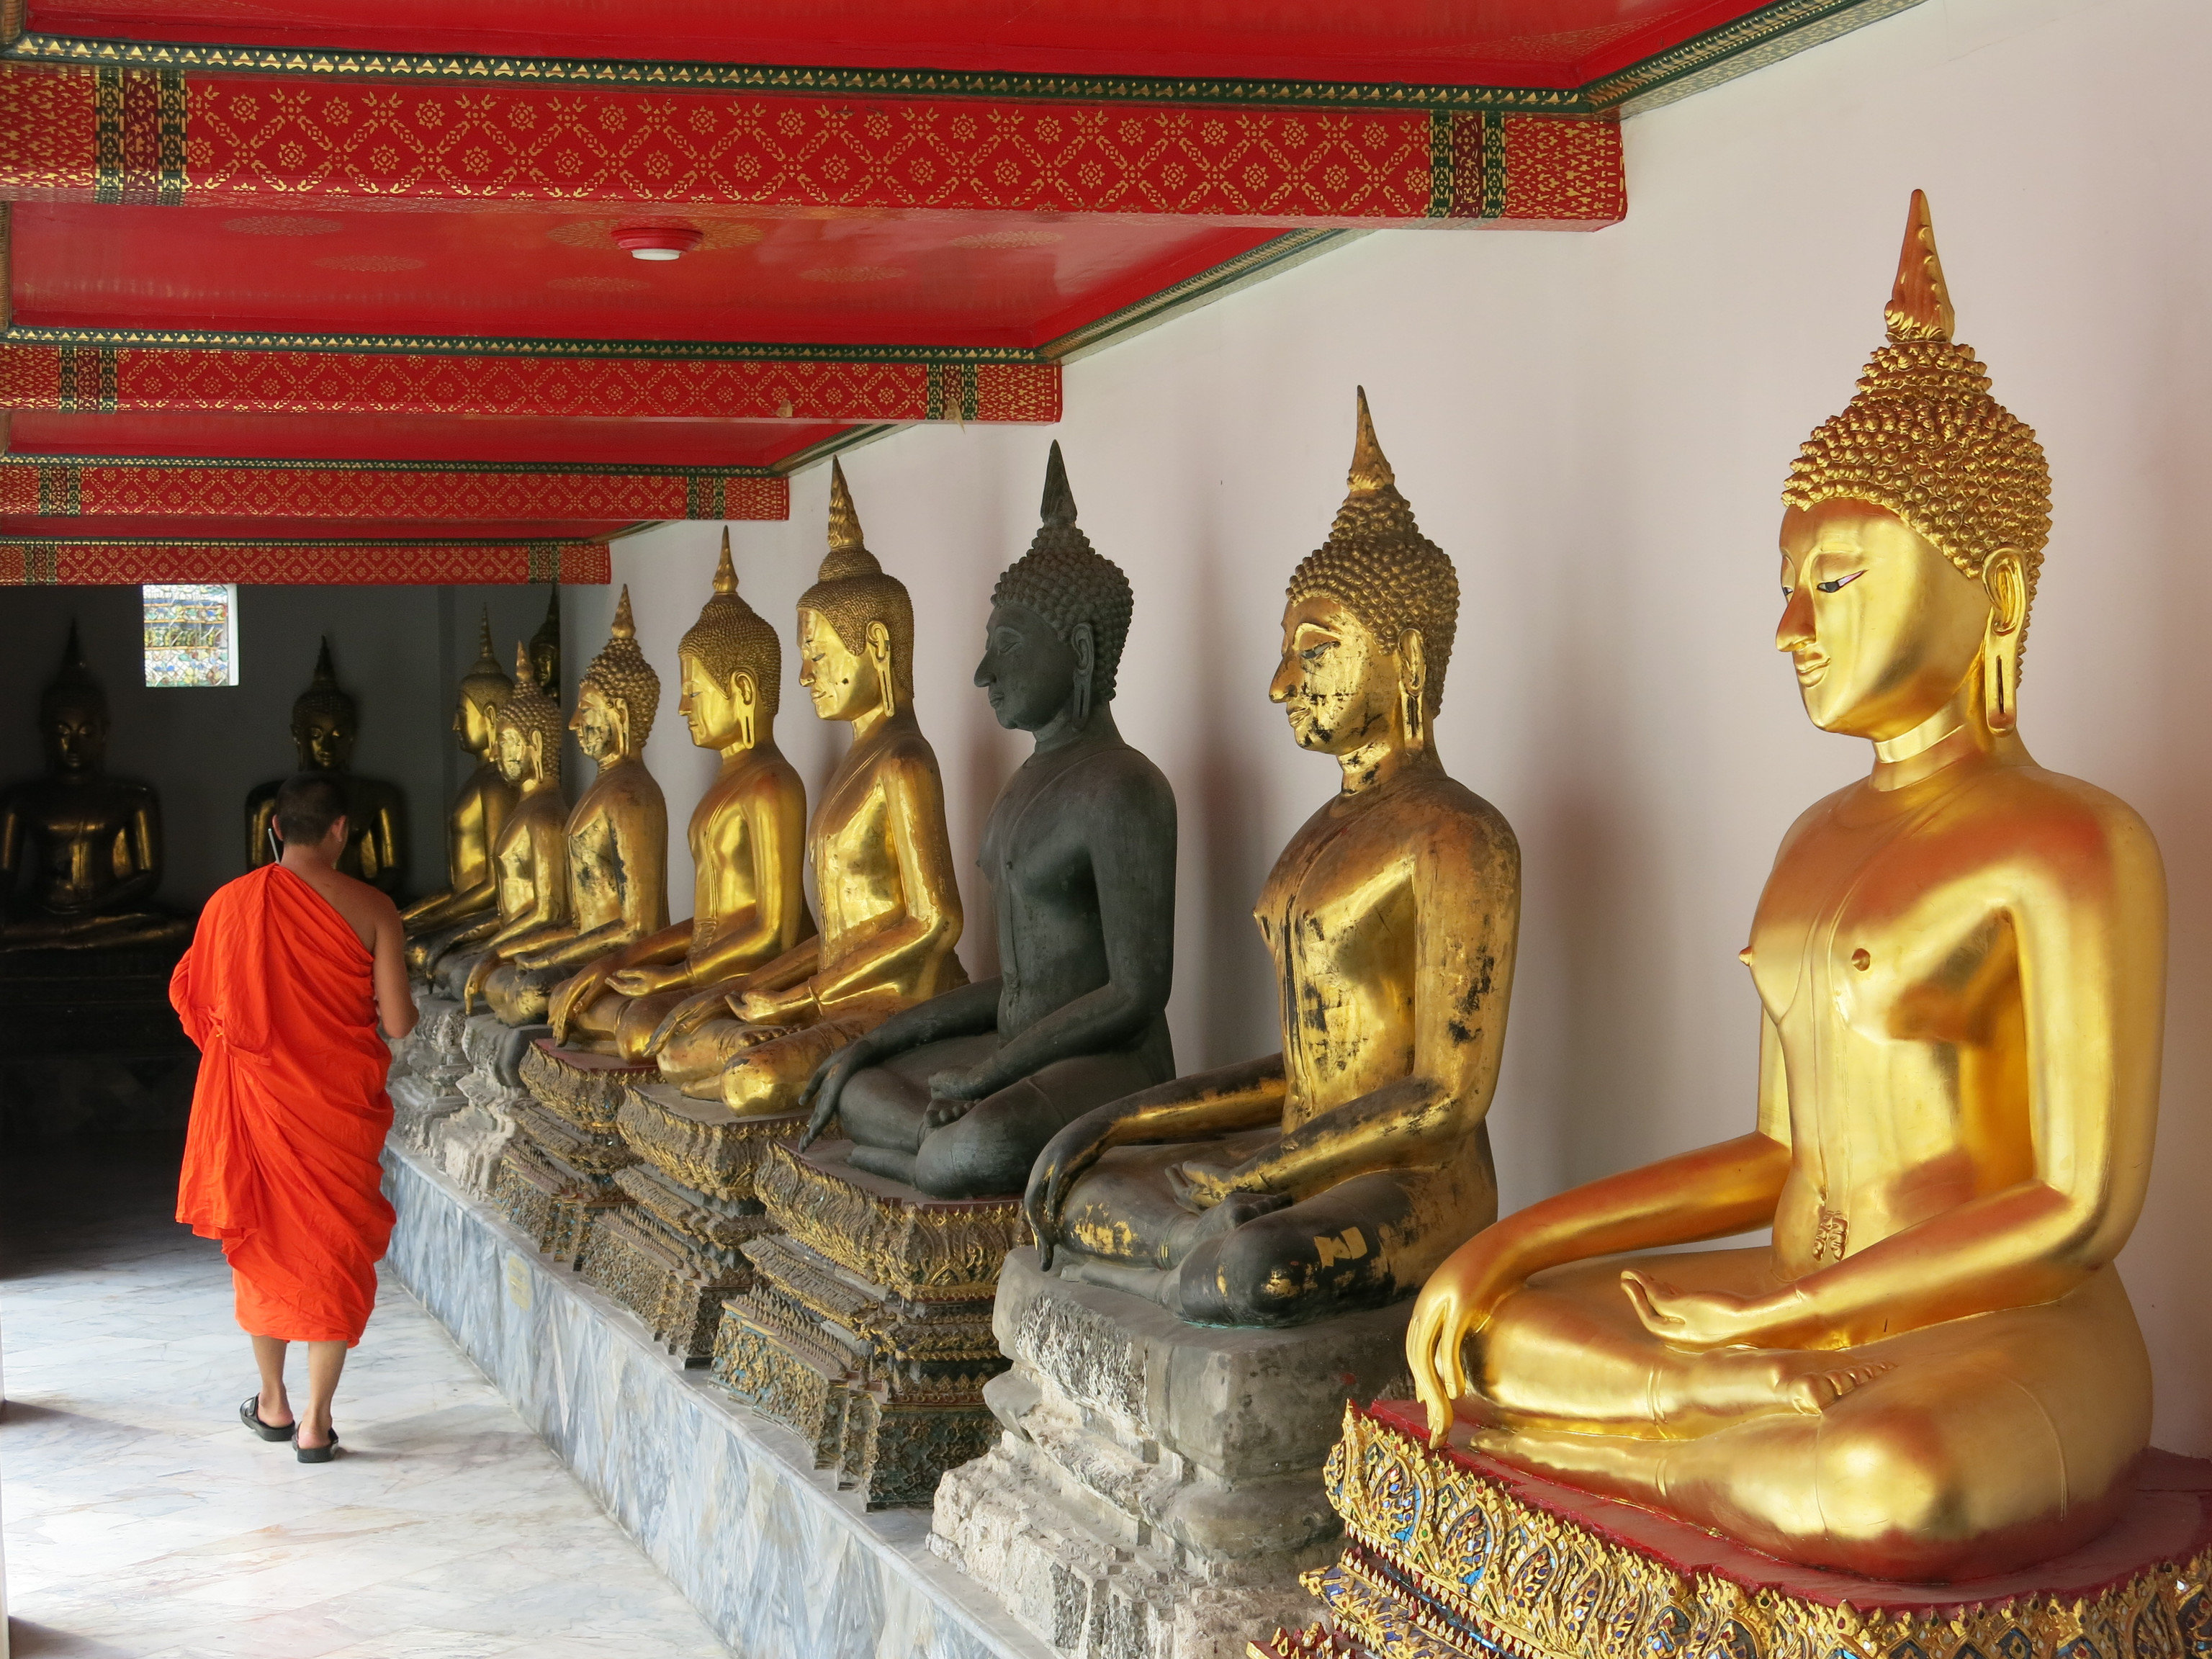 Budget statue gautama buddha hindu temple building wat monument place of worship temple carving ancient history